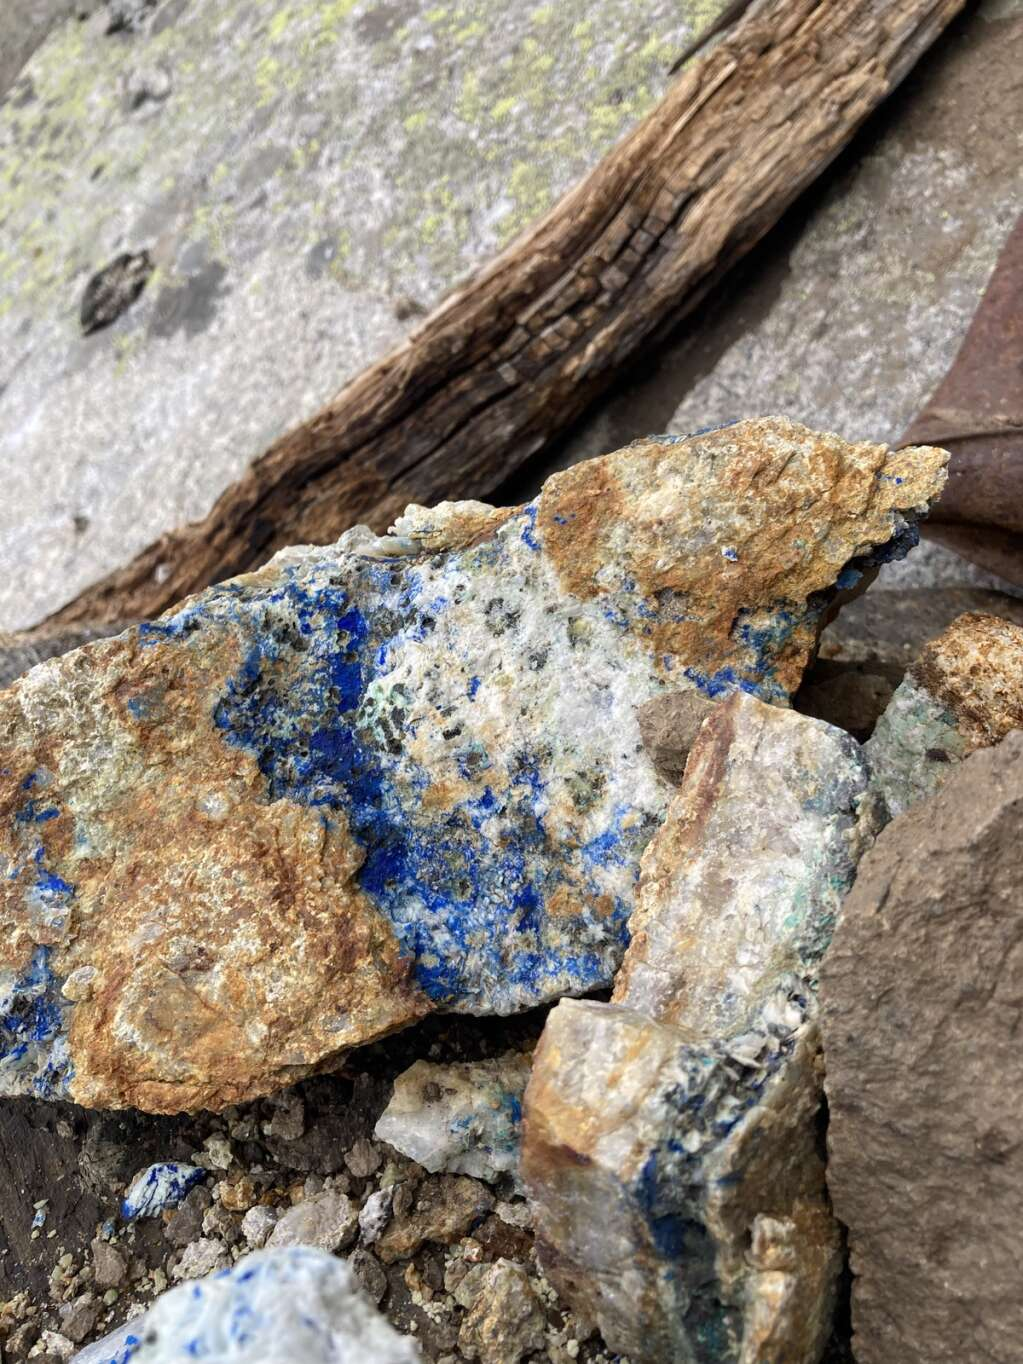 Old mining relics can be seen while climbing Arapahoe Basin Ski Area's new via ferrata climbing course on the East Wall.   Photo by Dawson Viles / Arapahoe Basin Ski Area